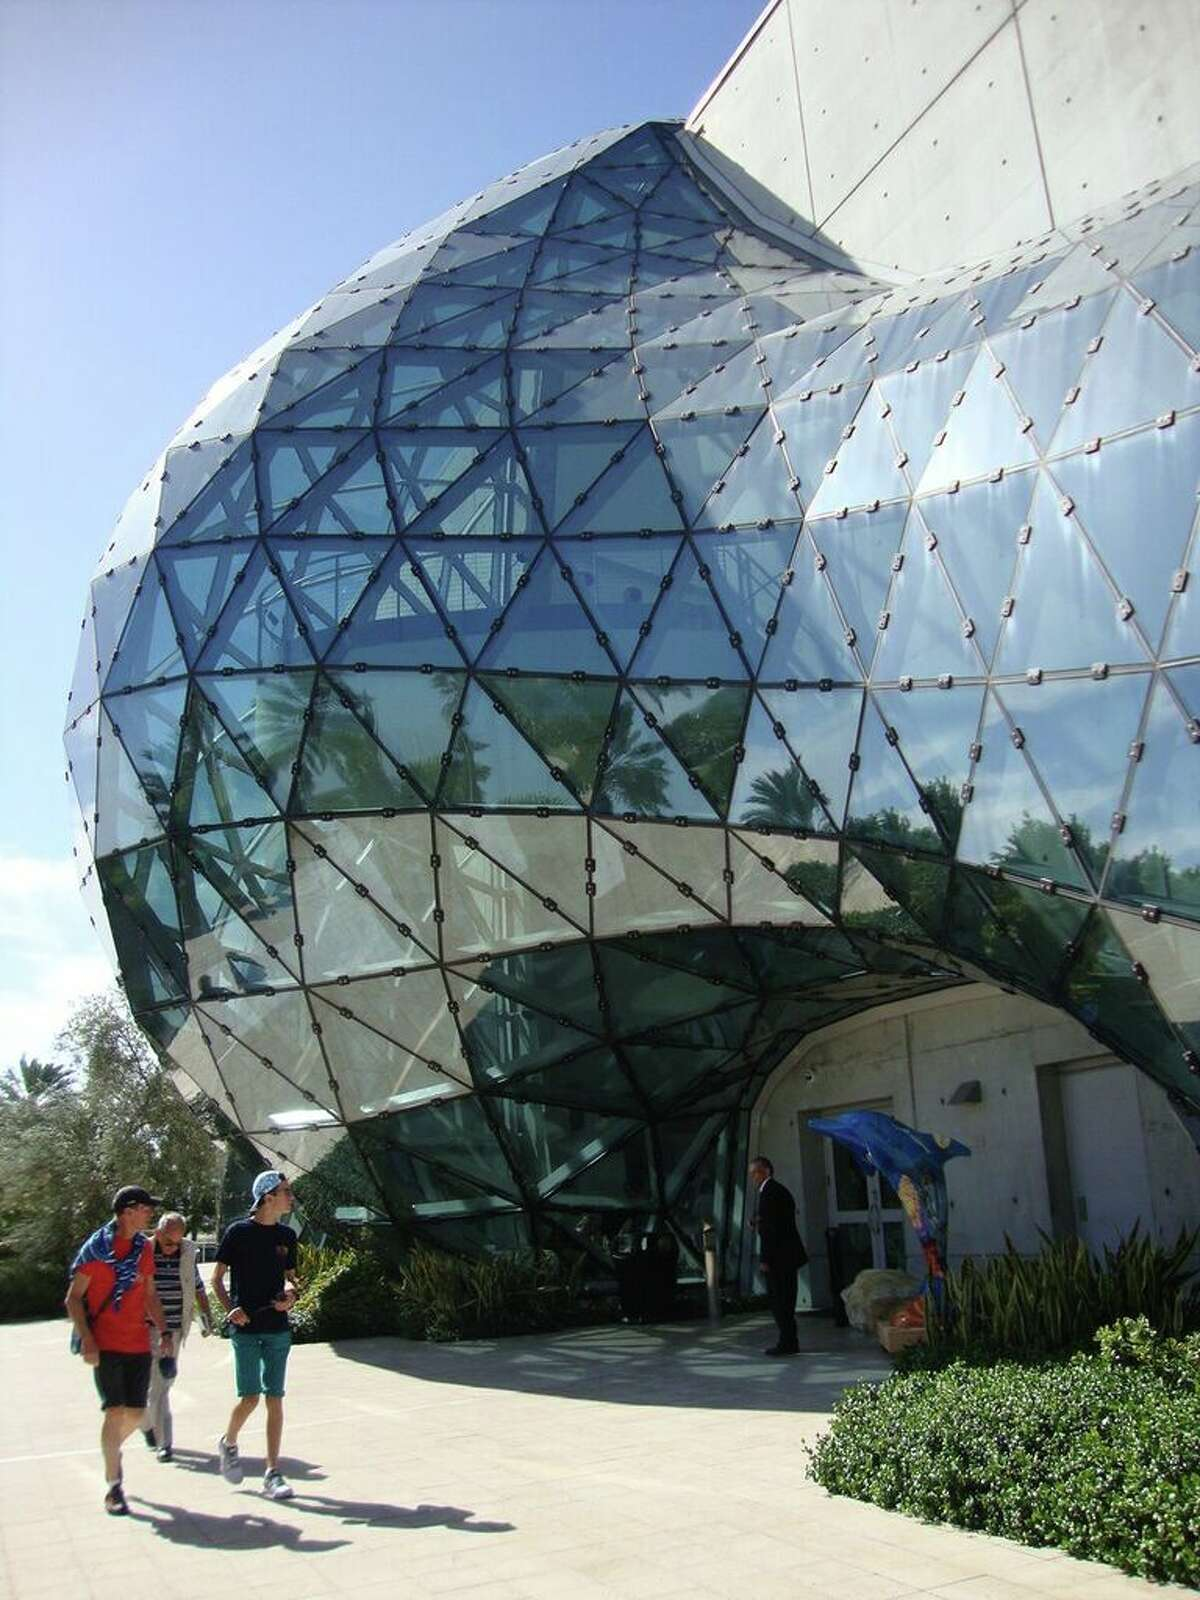 Spend time checking out the exterior and grounds of the Dali Museum in St. Pete.